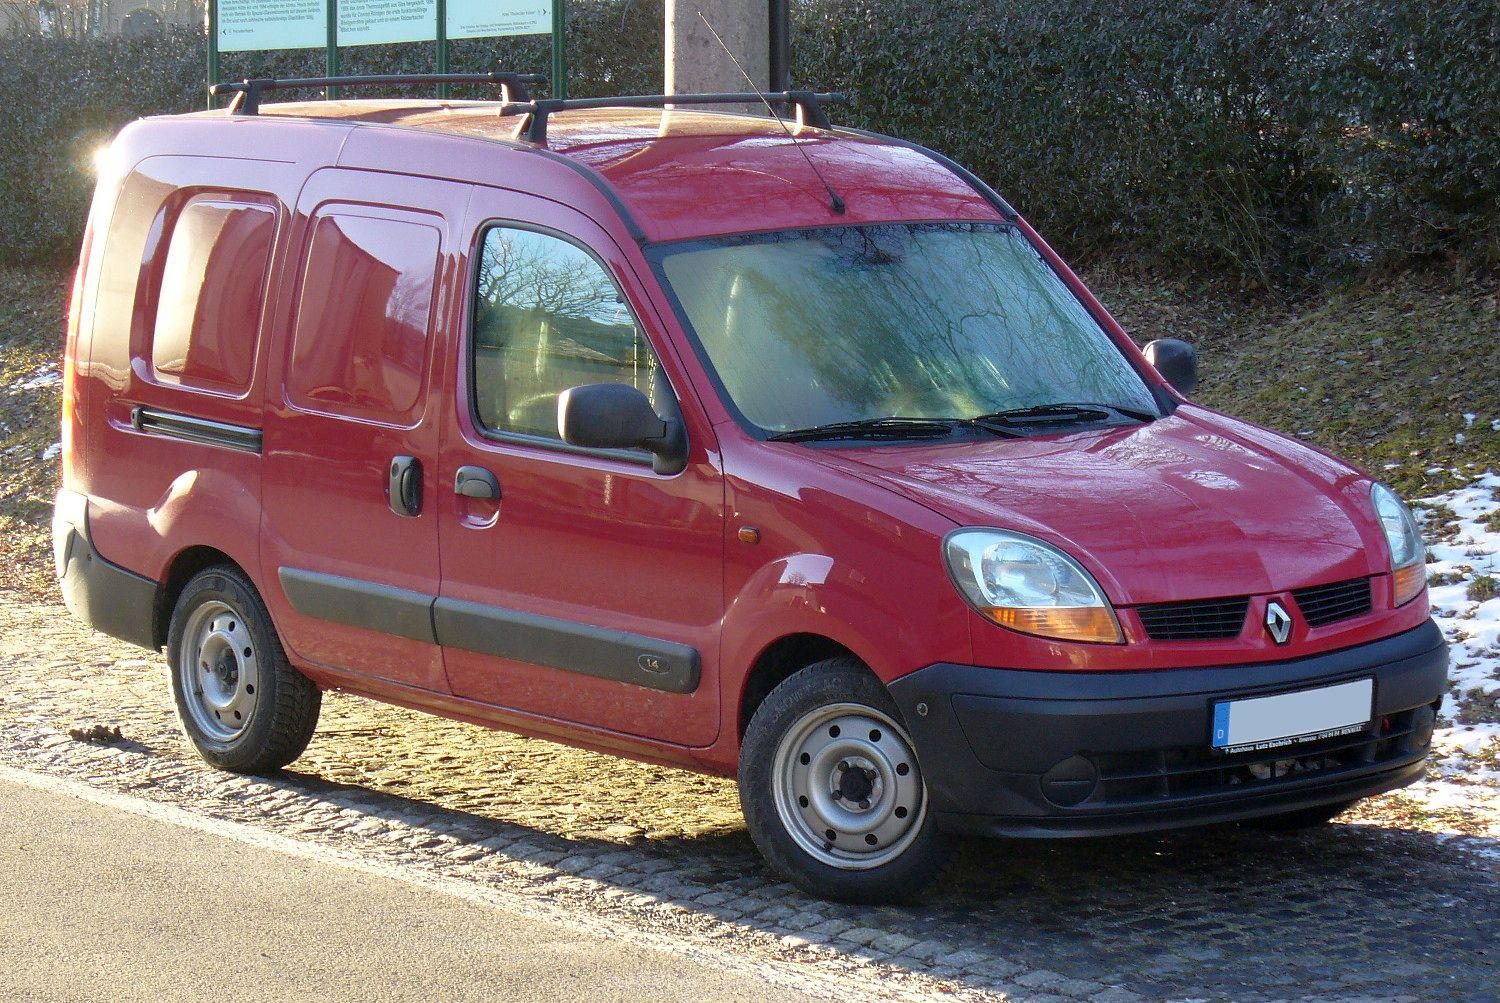 file renault kangoo rapid maxi phase ii 1 4 jpg wikimedia commons. Black Bedroom Furniture Sets. Home Design Ideas